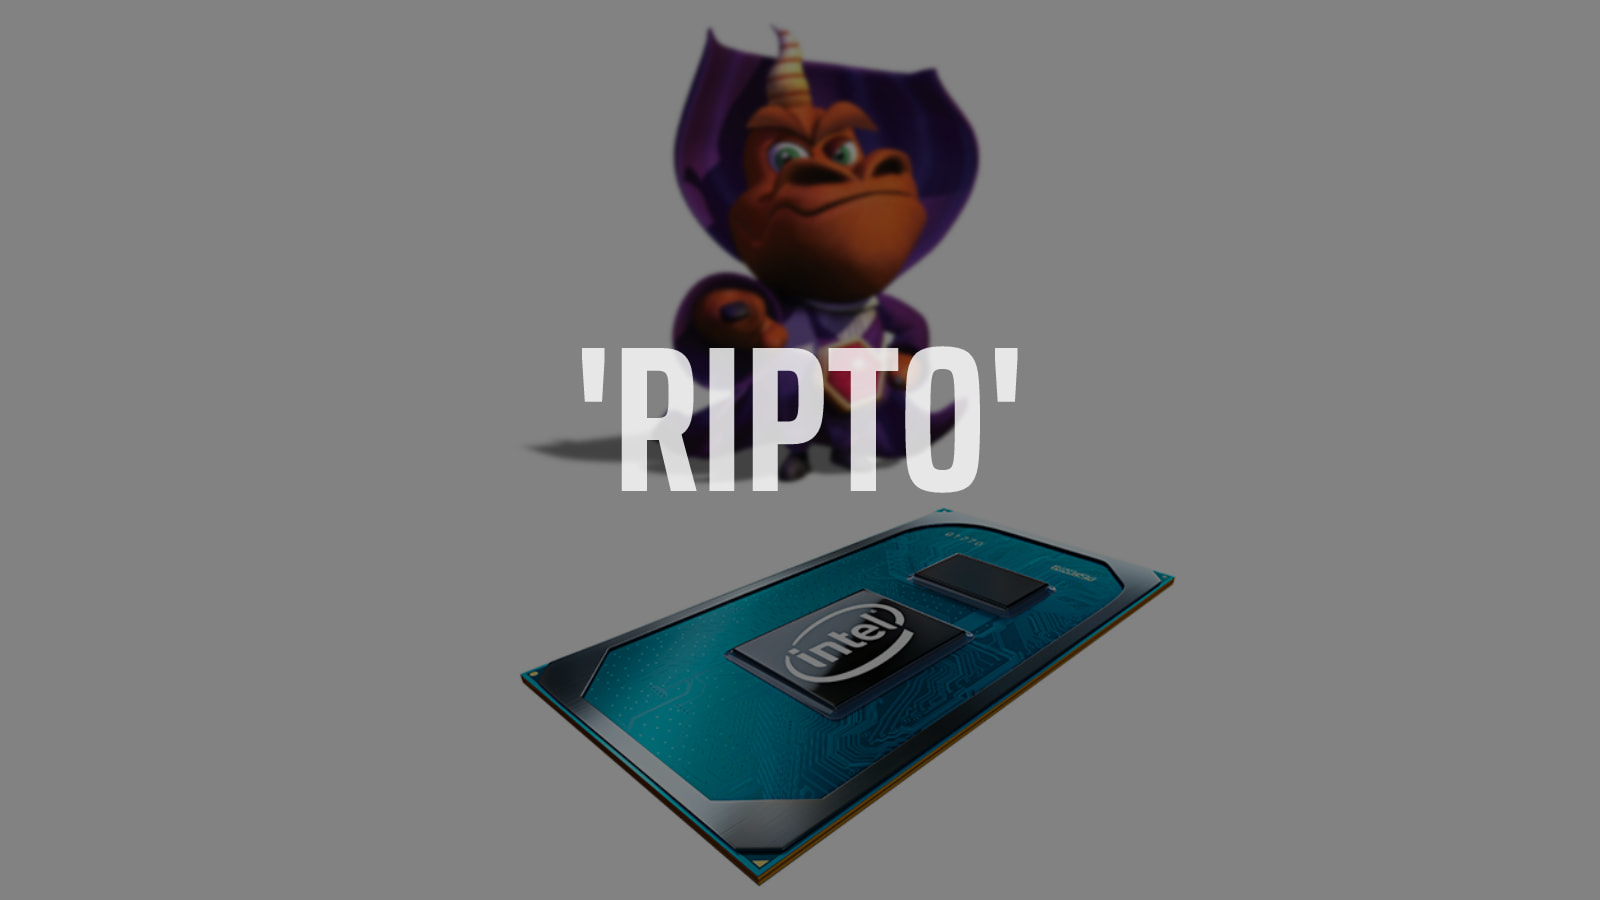 New 10nm+ Tiger Lake Chromebook discovered: Meet 'Ripto'